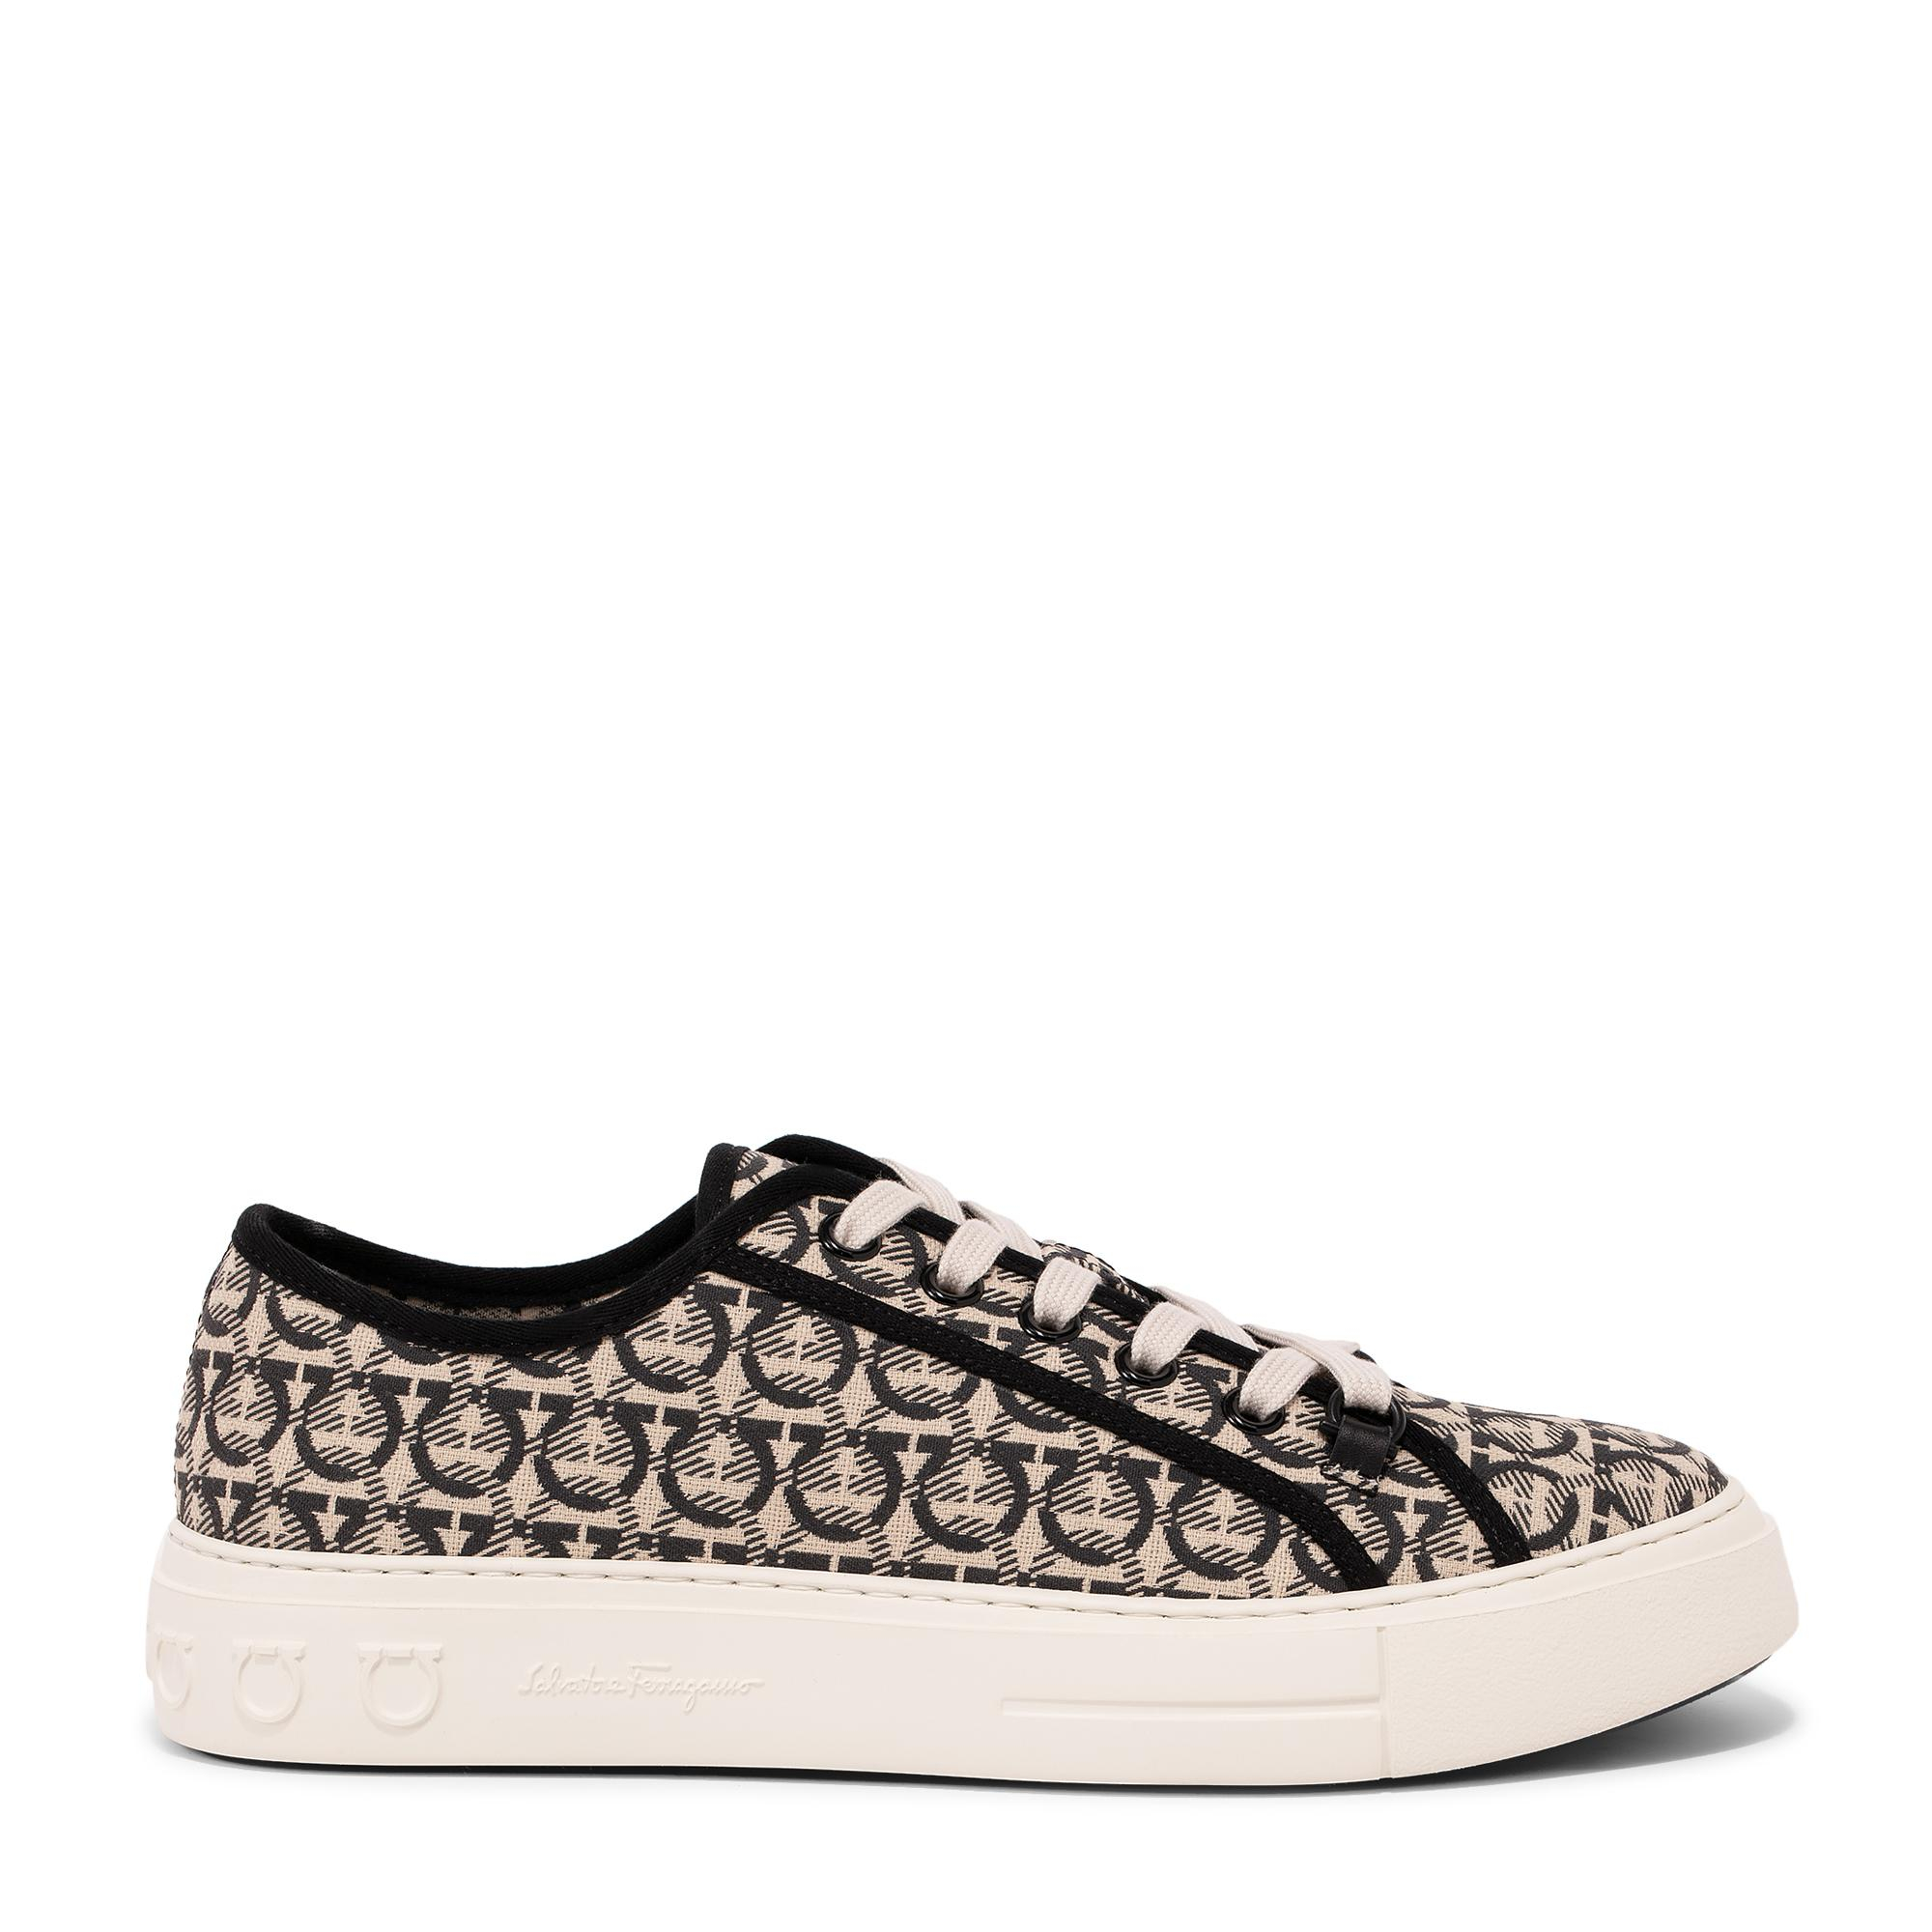 Anson sneakers